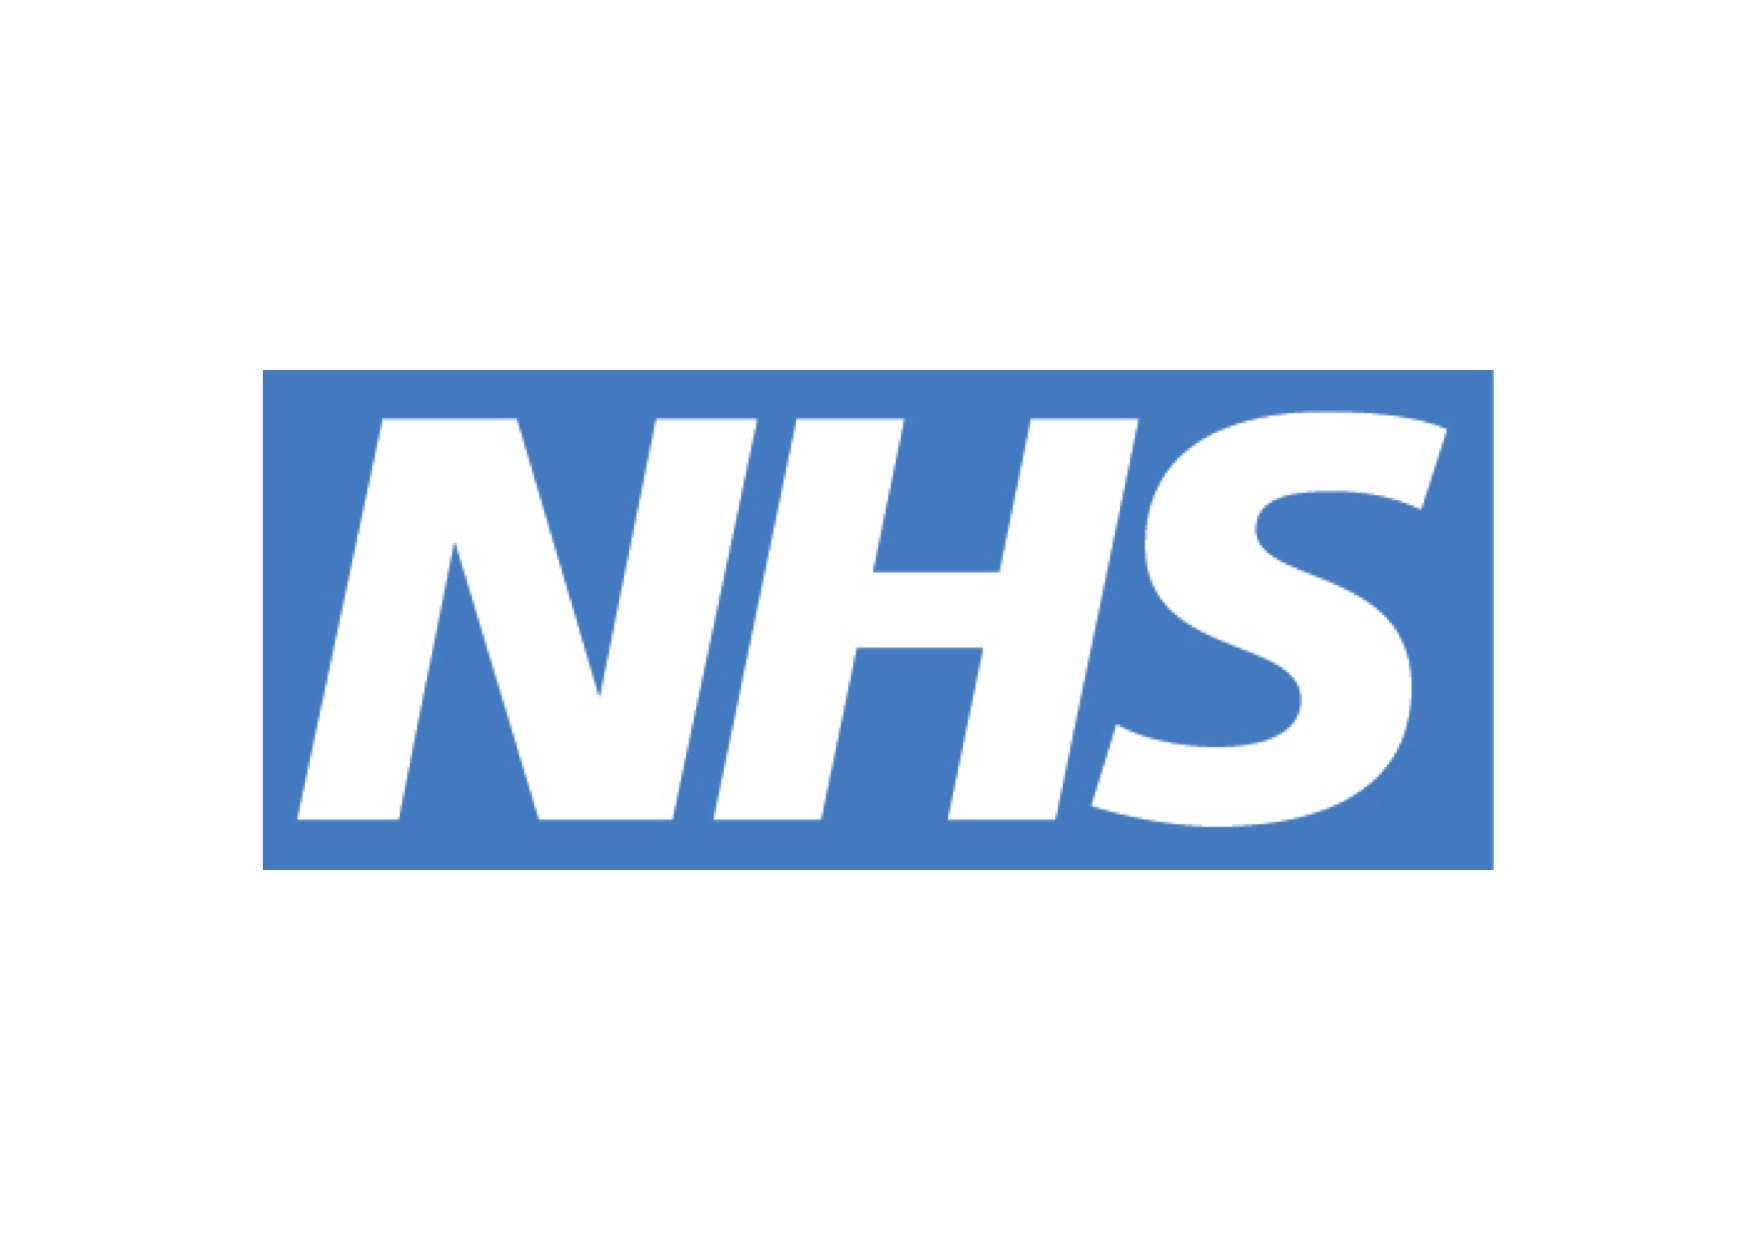 The NHS approved the operation